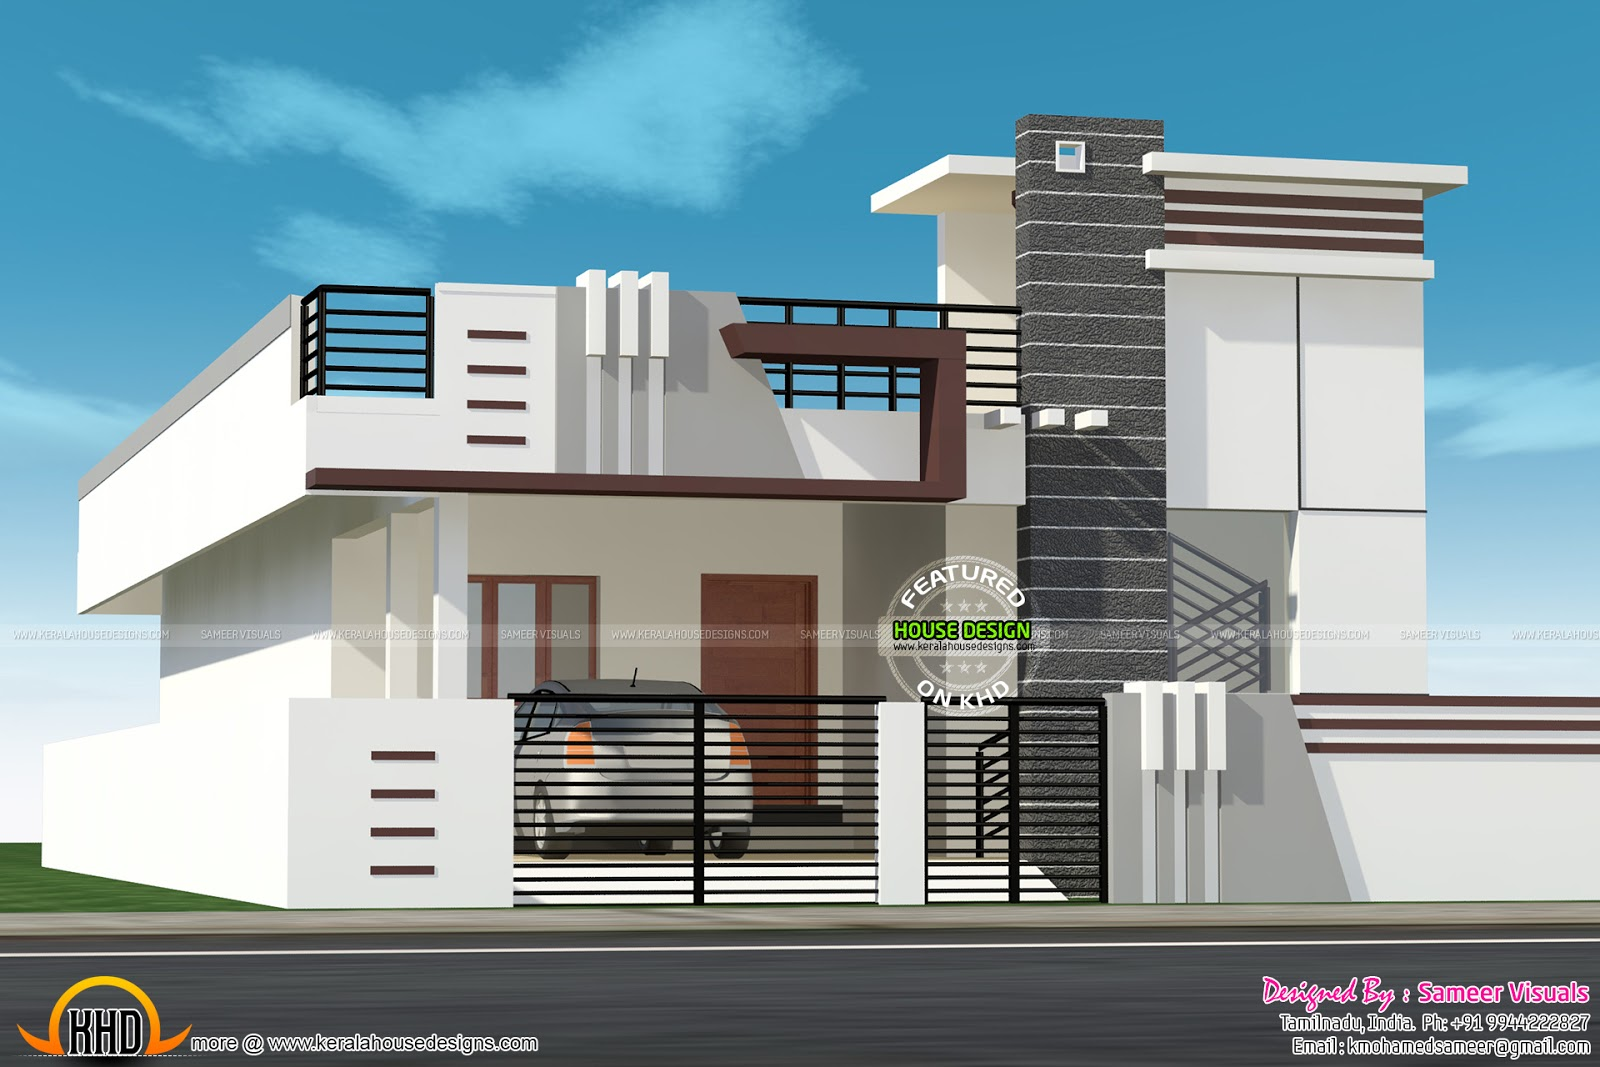 125 sq m small house kerala home design and floor plans for Window design tamilnadu